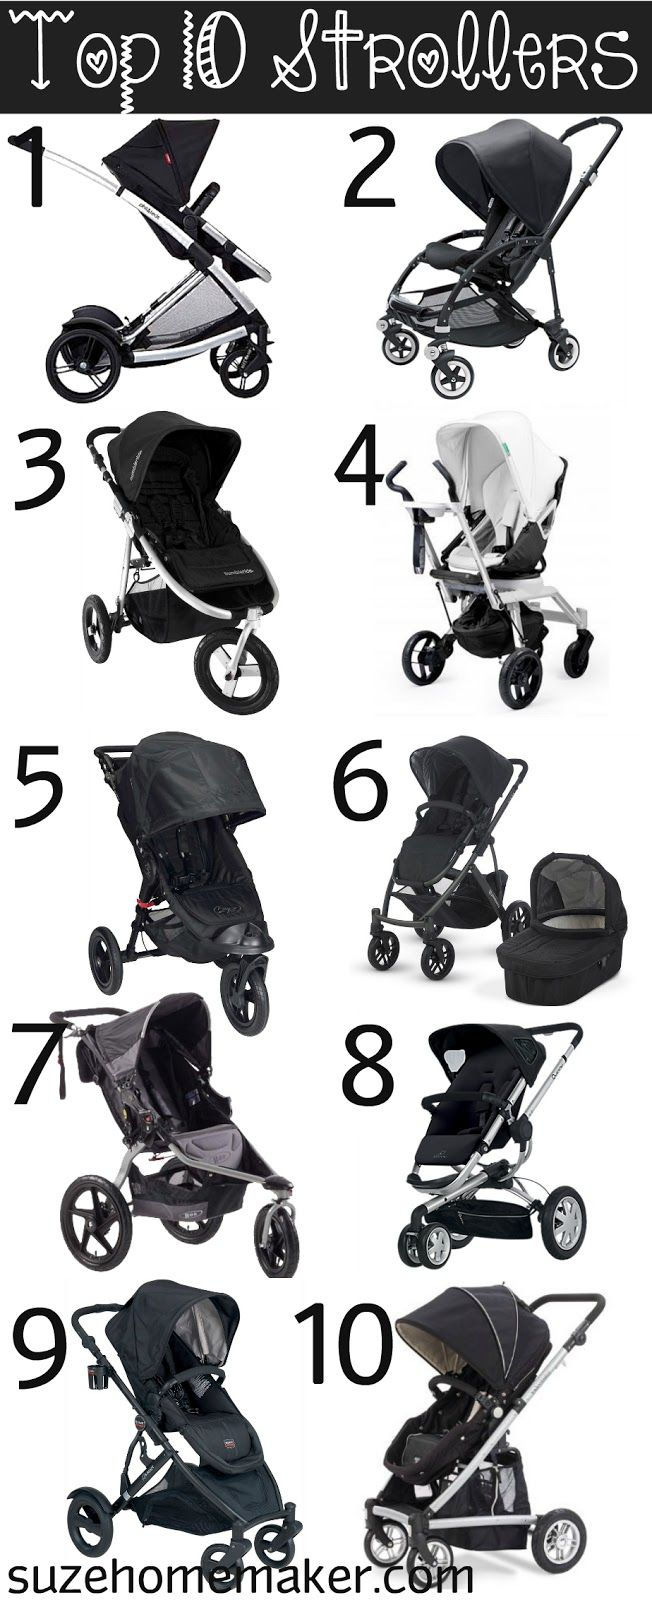 Pros and Cons of the Top 10 Strollers! So many choices...